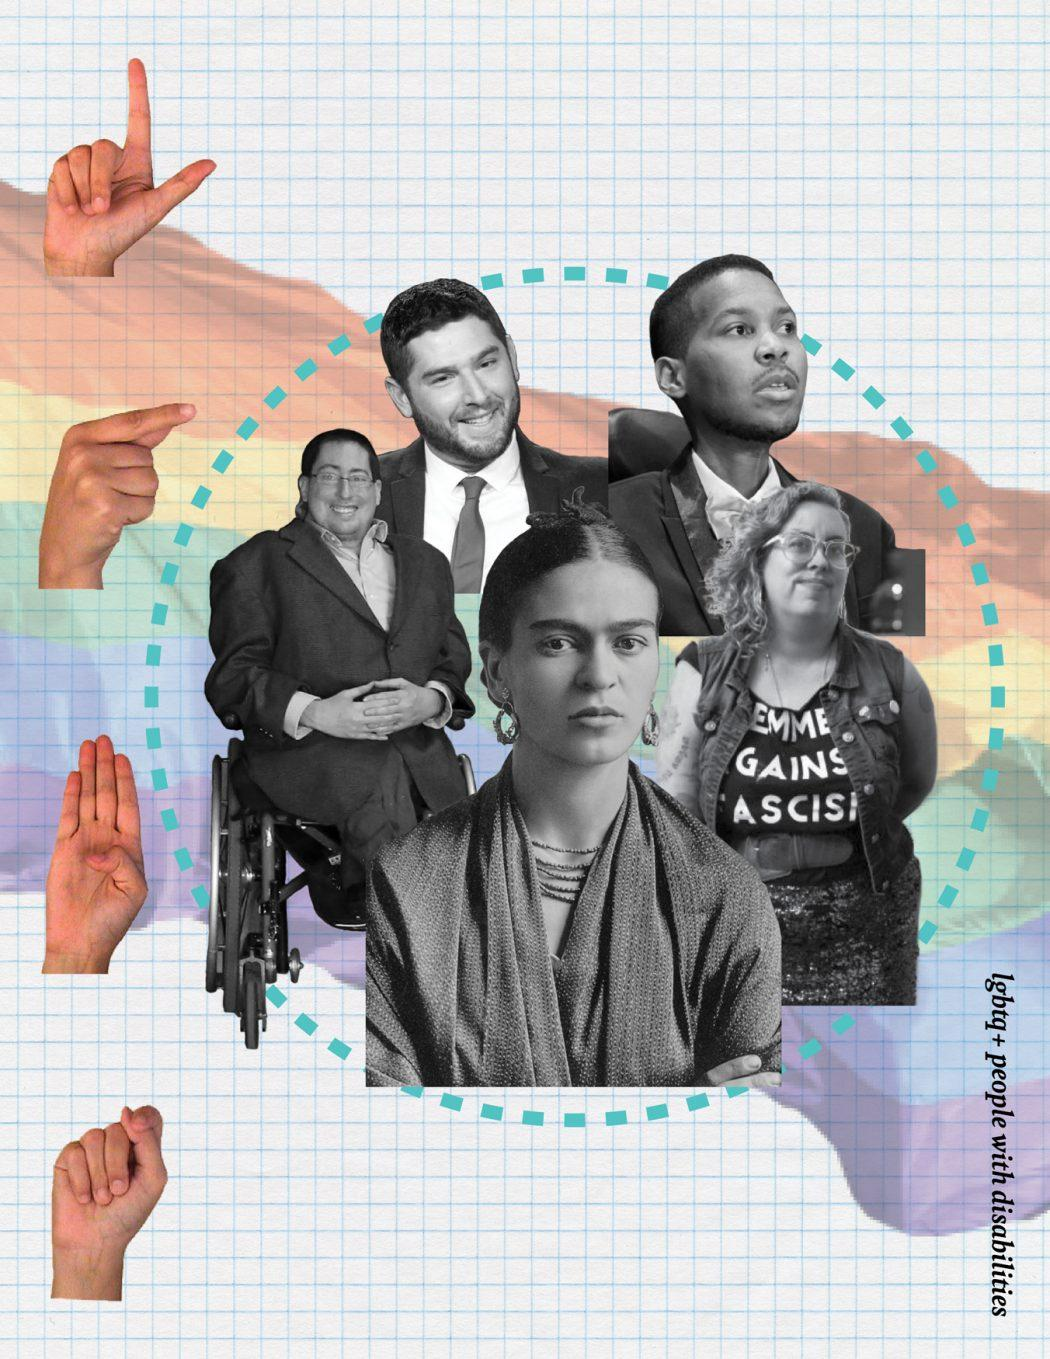 Intersectionality: Collages of Community